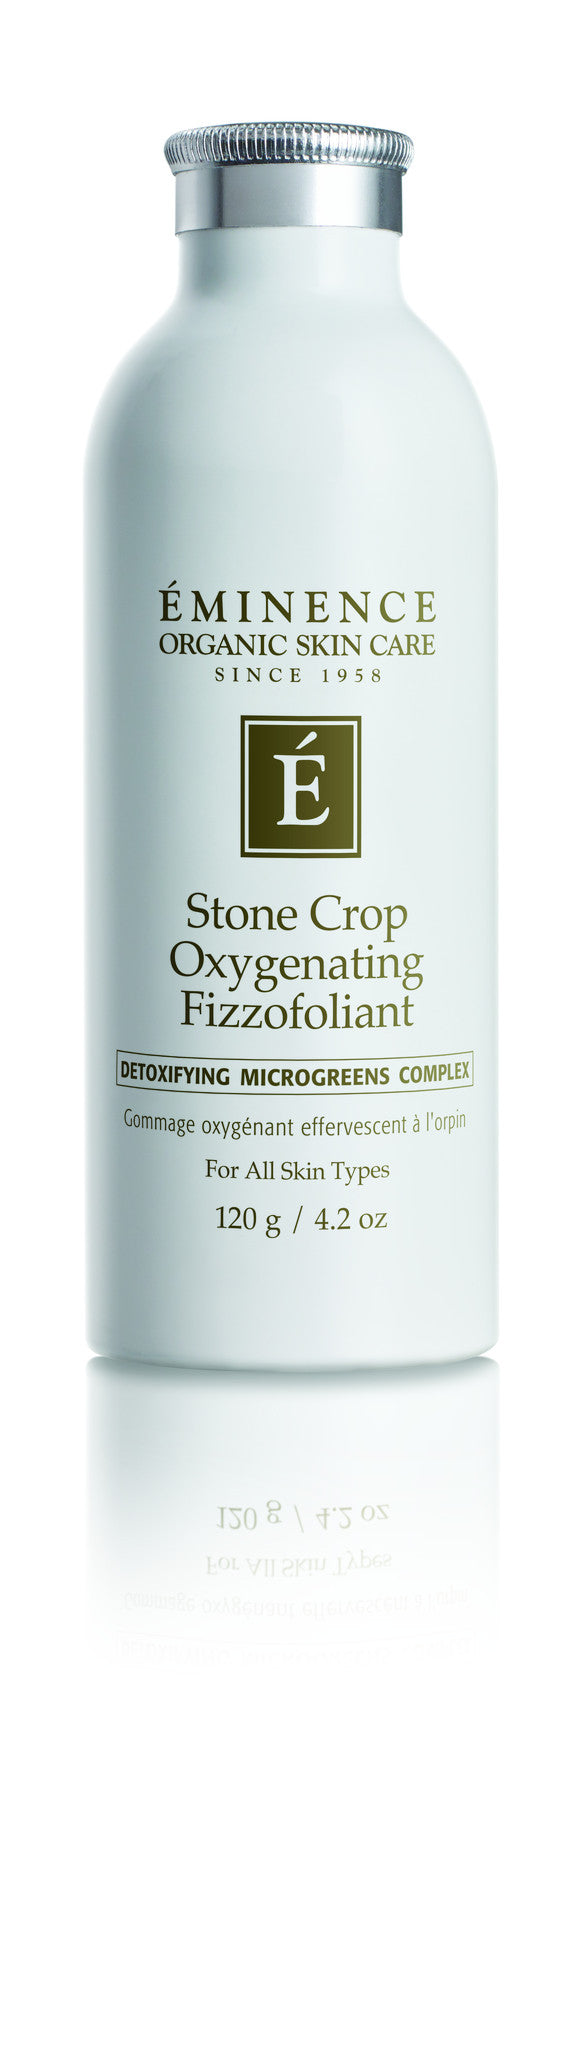 Stone Crop Oxygenating Fizzofoliant